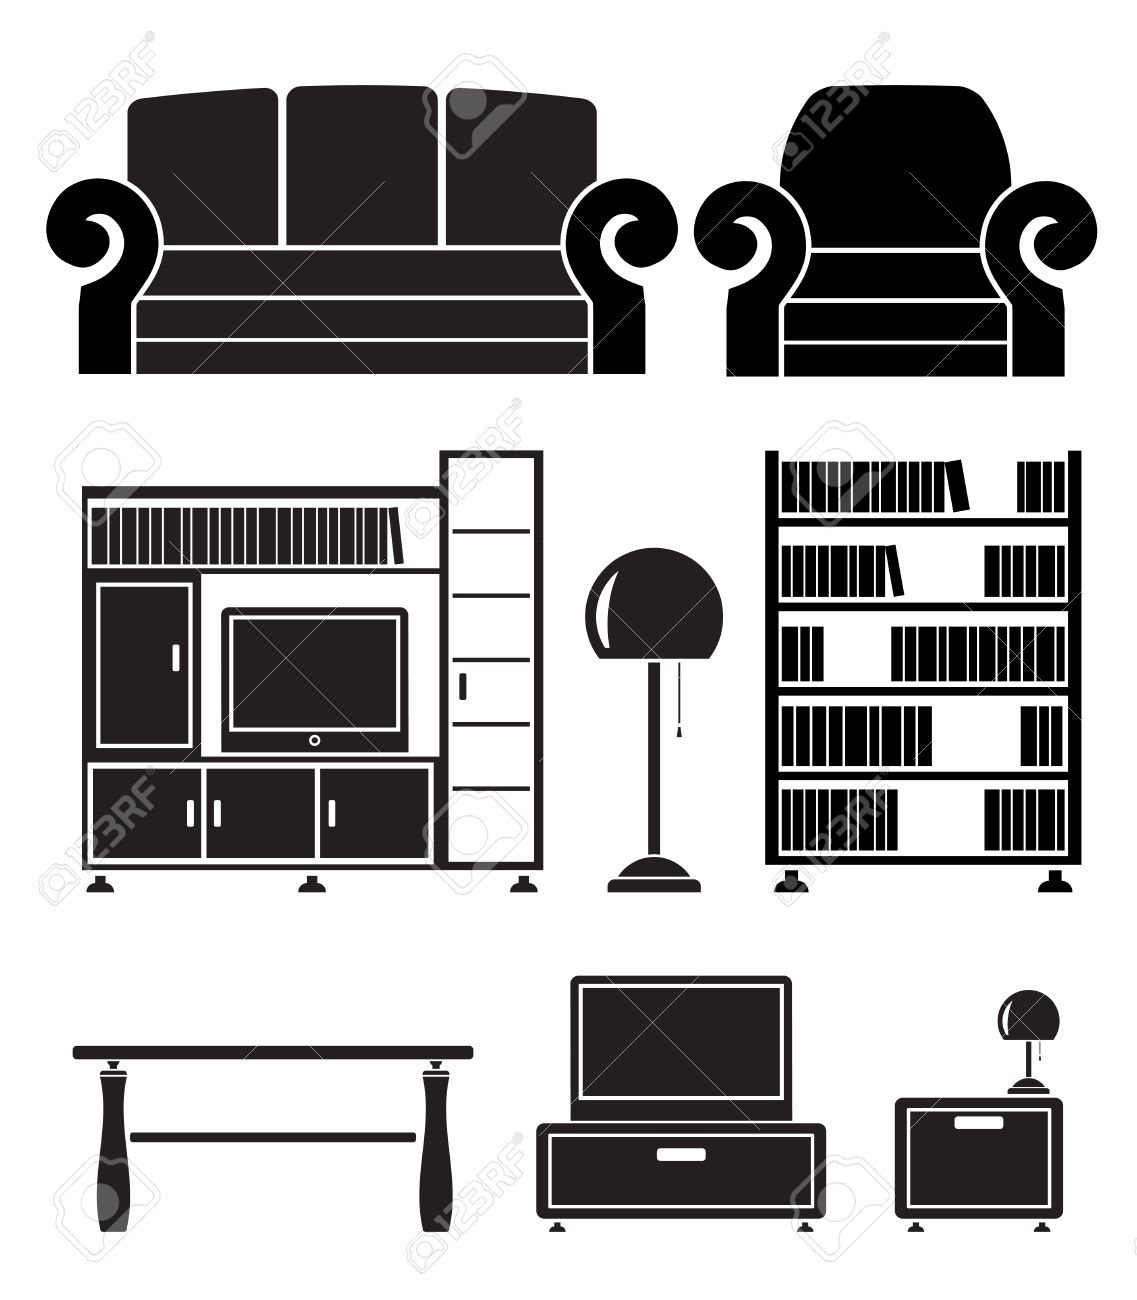 living room objects, furniture and equipment Stock Vector - 8865360